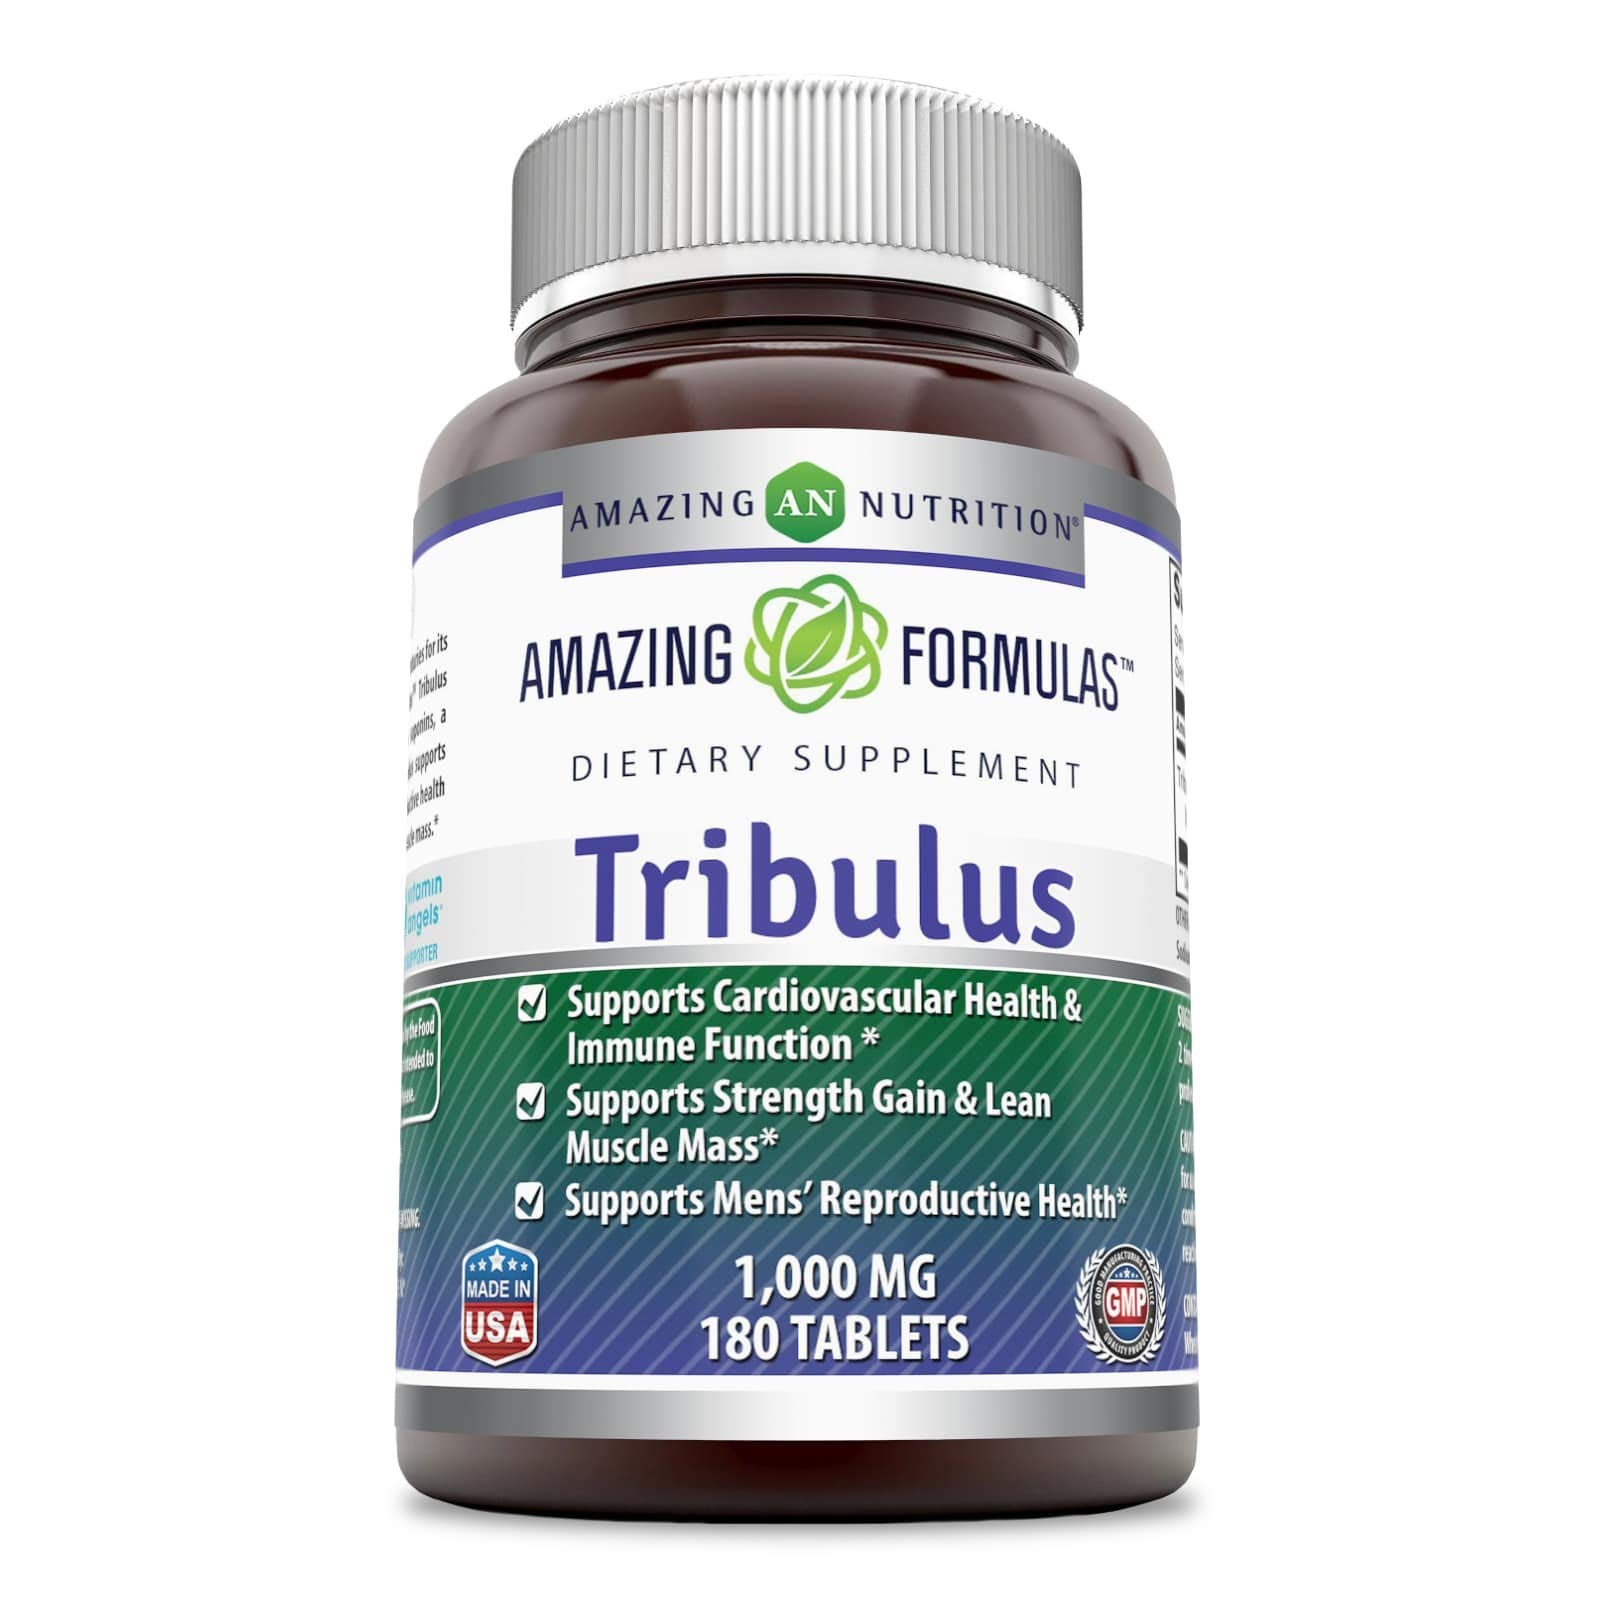 Amazing Formulas Tribulus Extract Dietary Supplement - 1000 MG Tablets- Standardized to contain Min. 45% Saponins - Supports Lean Muscle Mass, Promotes Cardiovascular Health, Immune System (180 Count)